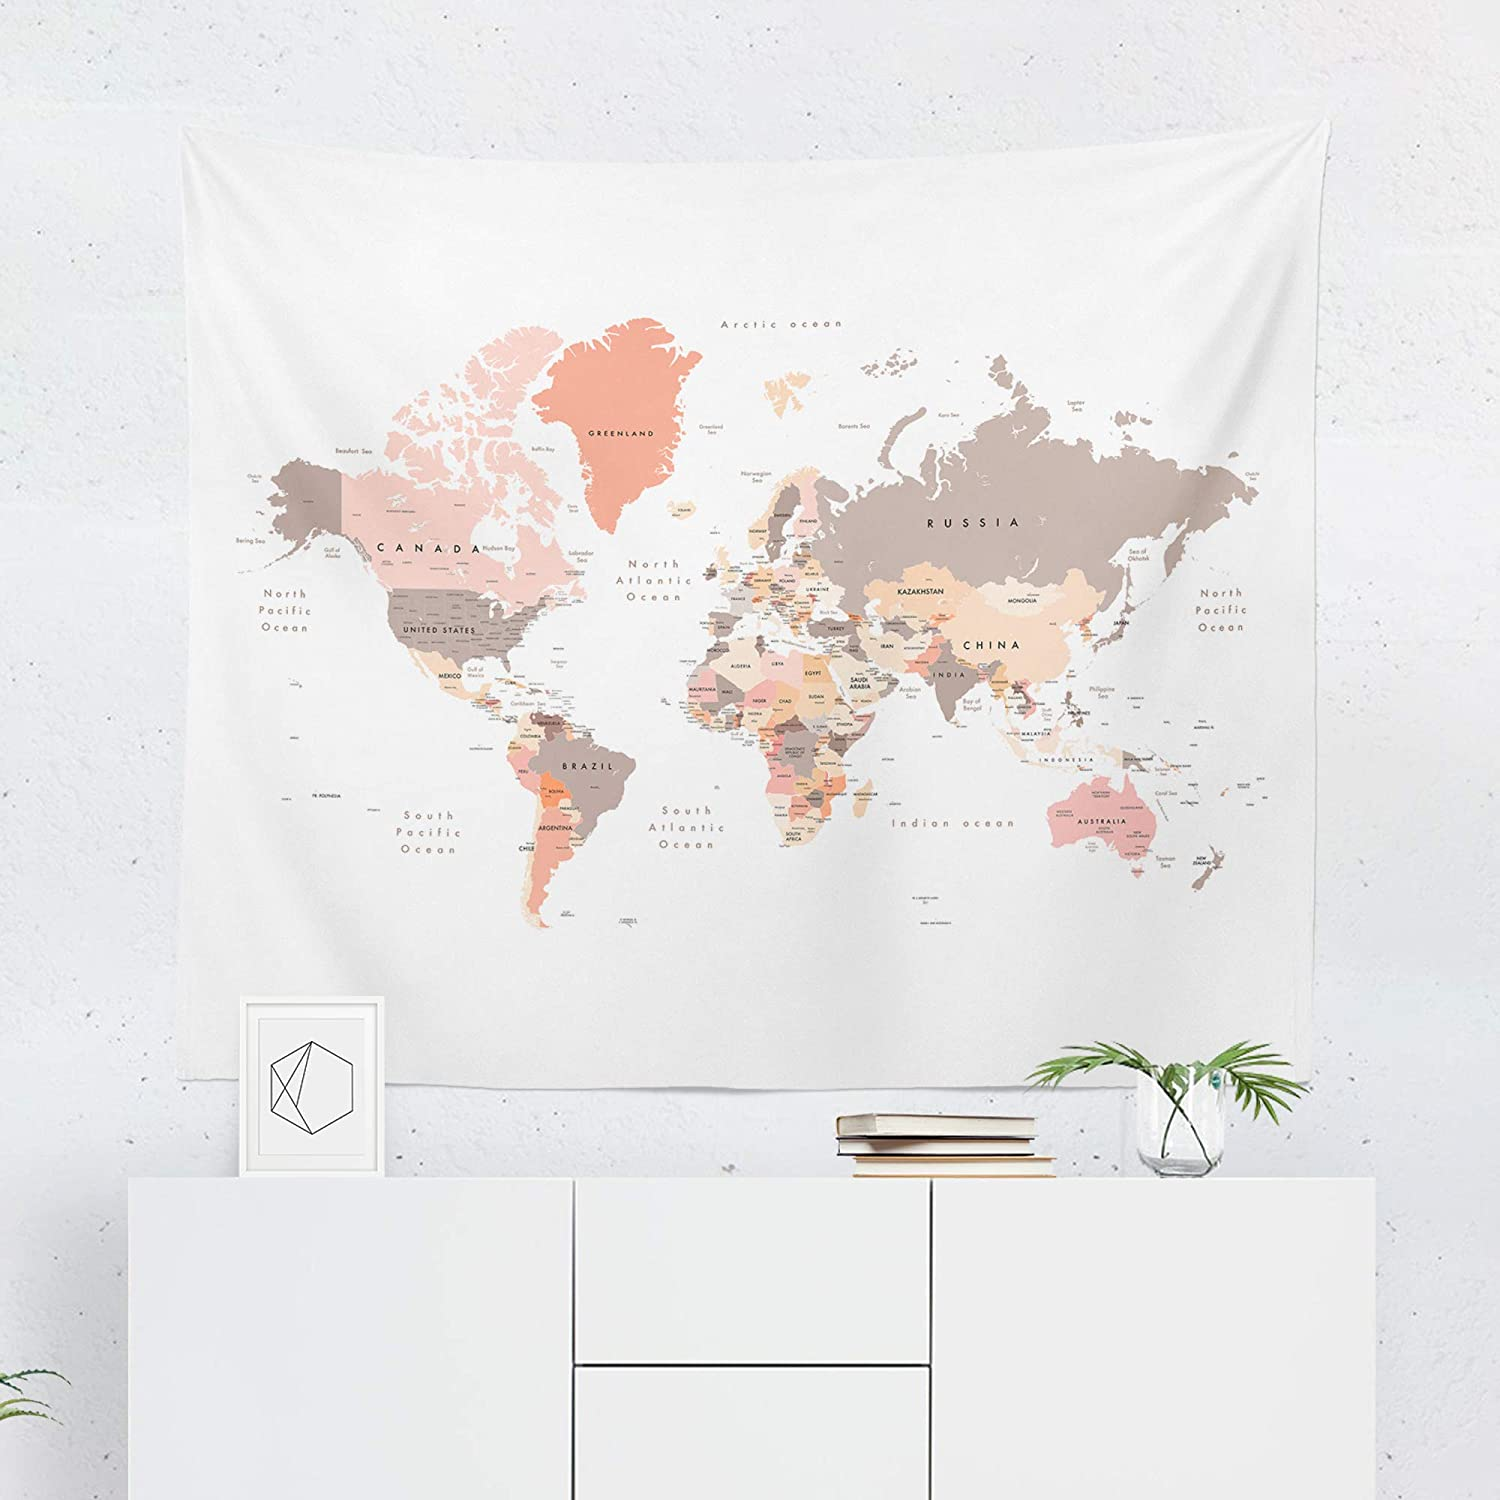 Printed in the USA Brown Map Tapestry Wall Hanging World Maps Globe Country Colorful Tapestries Decor College Dorm Living Room Art Gift Bedroom Dormitory Bedspread Small Medium Large